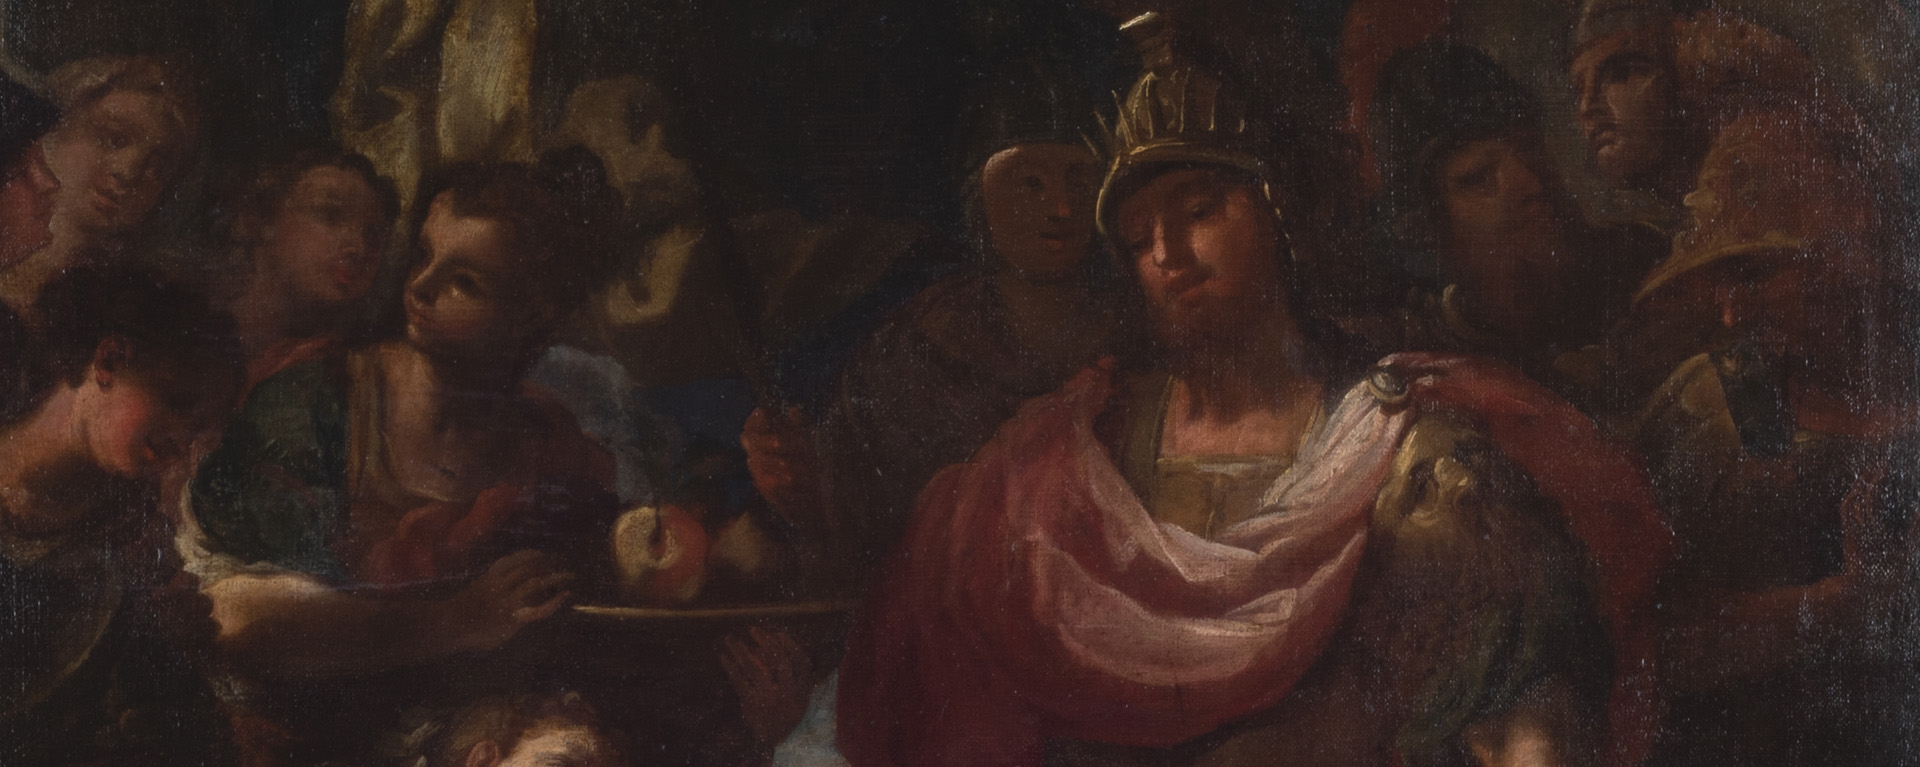 meeting of david and abigail, oil on canvas, 18th century, Mulvane Art Museum permanent collection